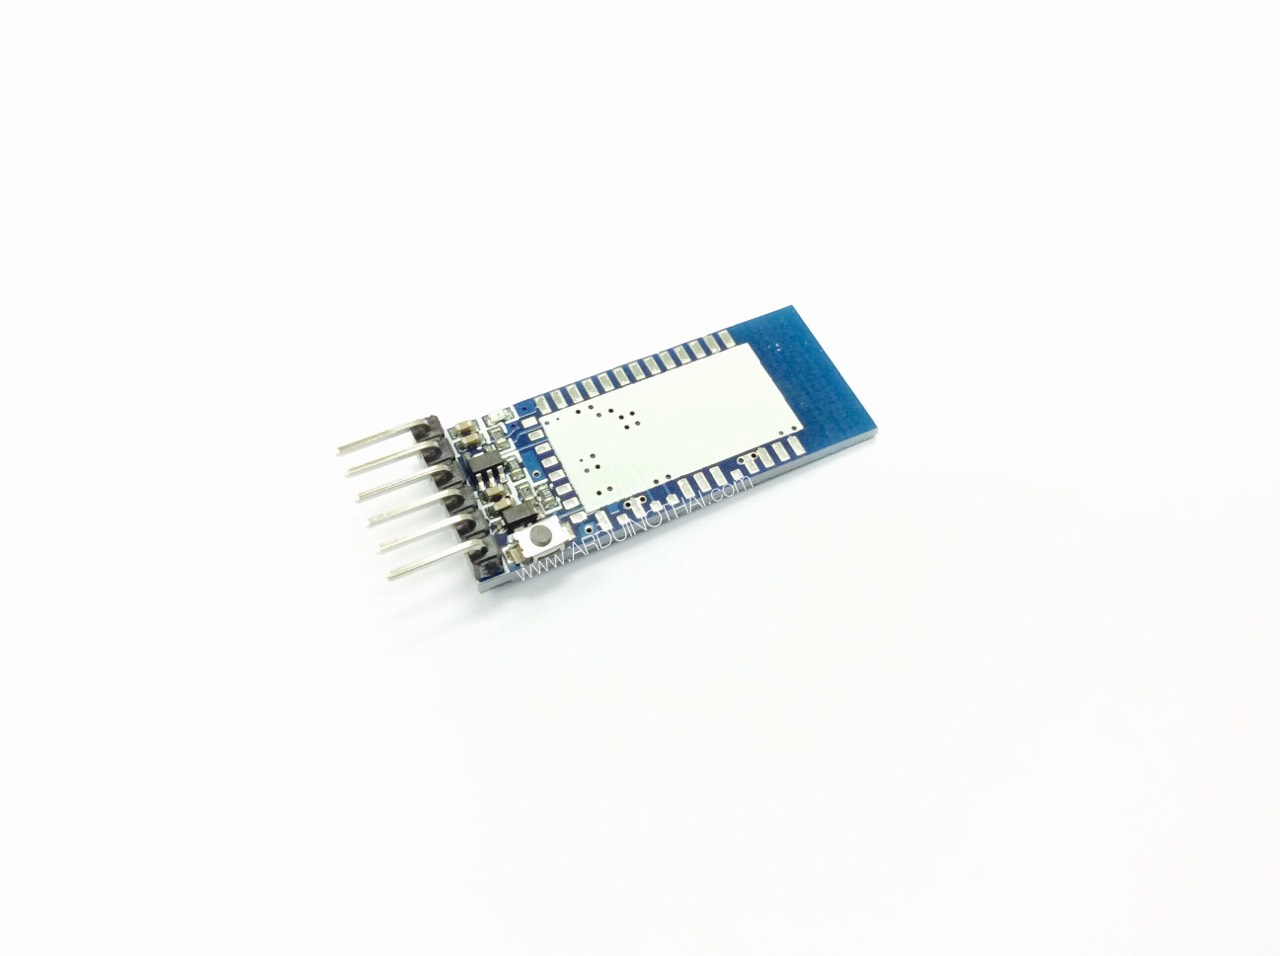 Bluetooth module backplane